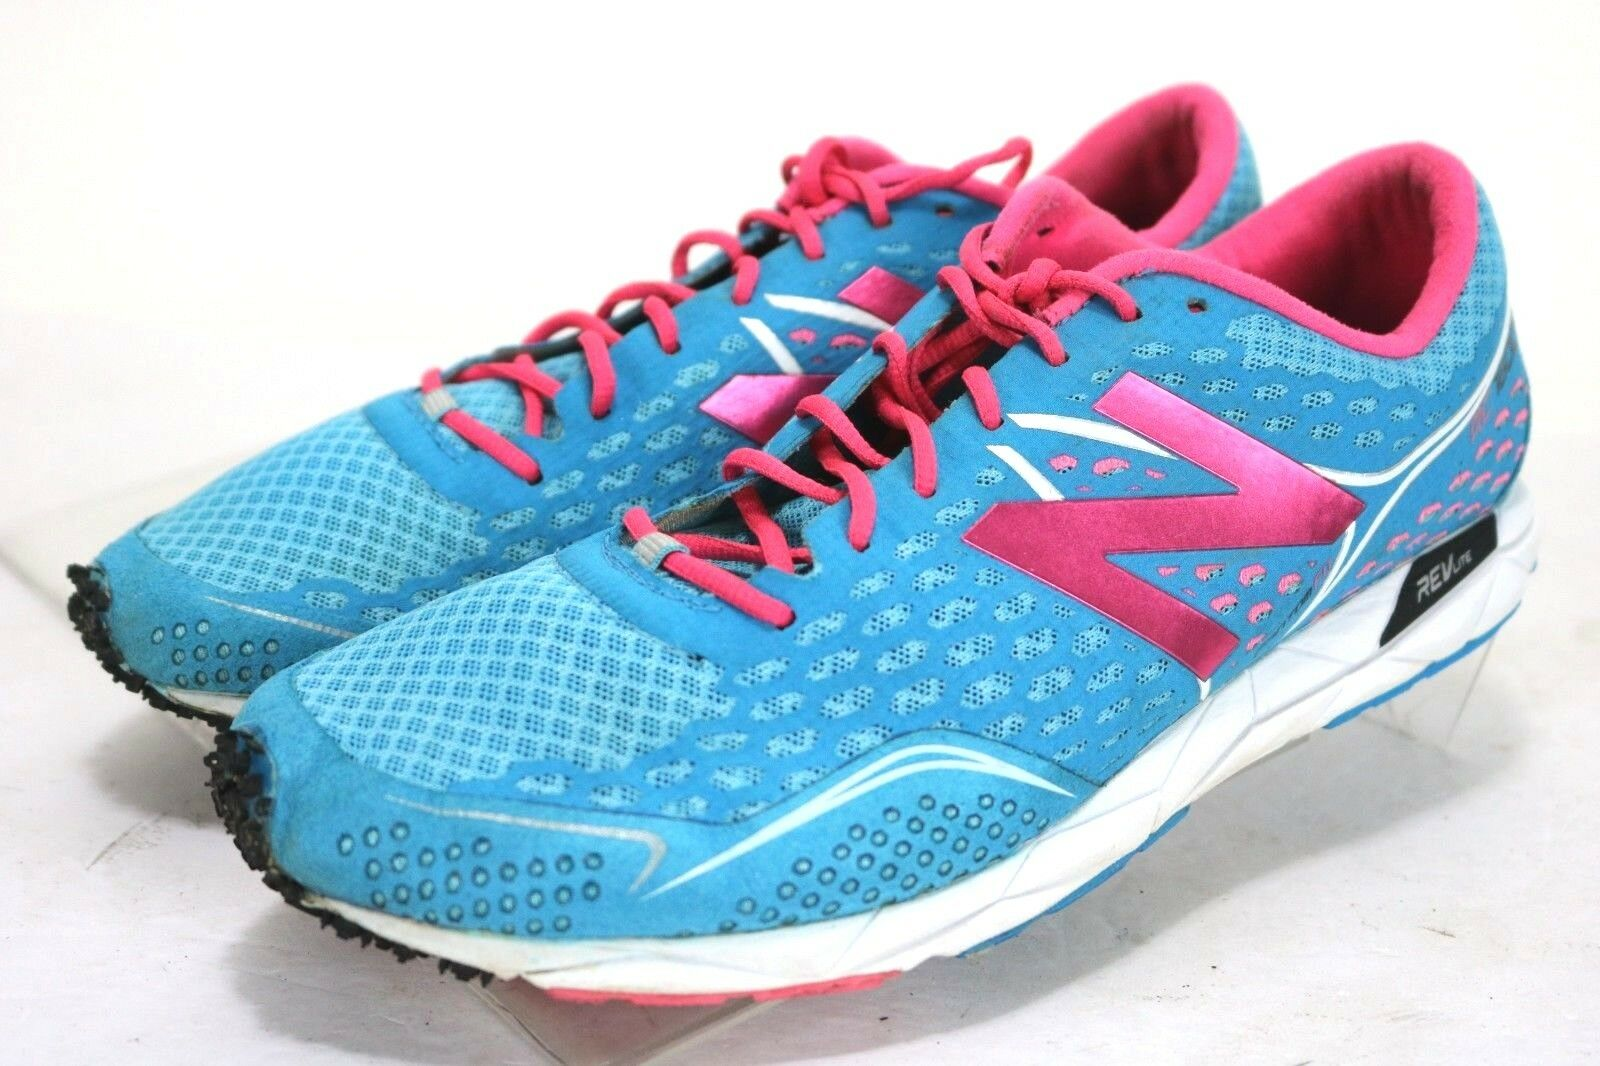 New Balance RC1600  Women's Running shoes Size 9.5 bluee Pink